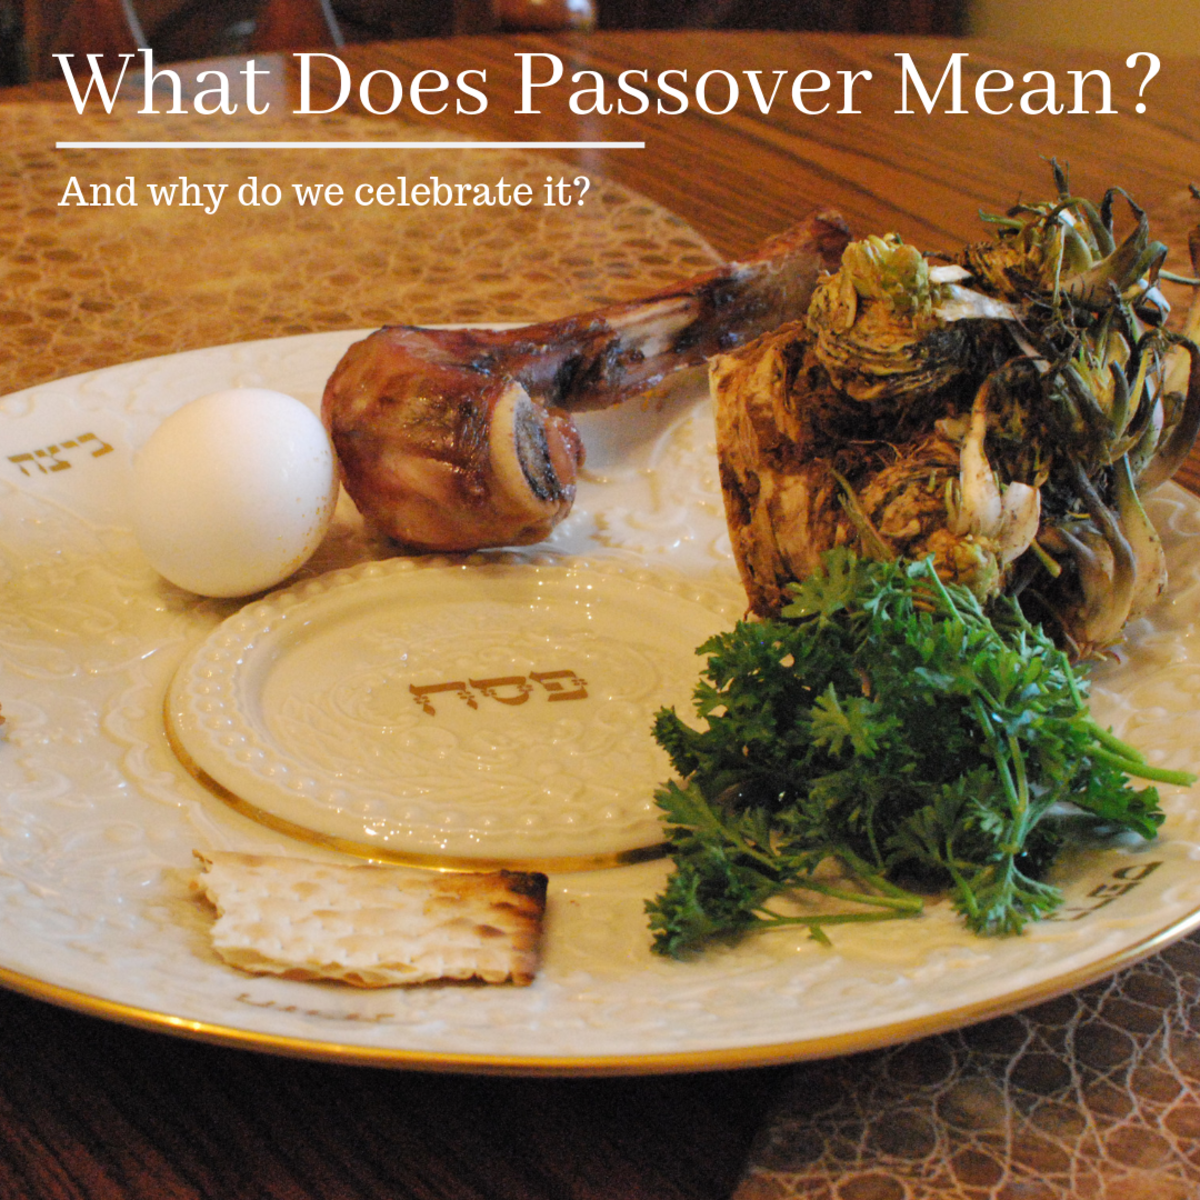 Why Do Jews Celebrate Passover?